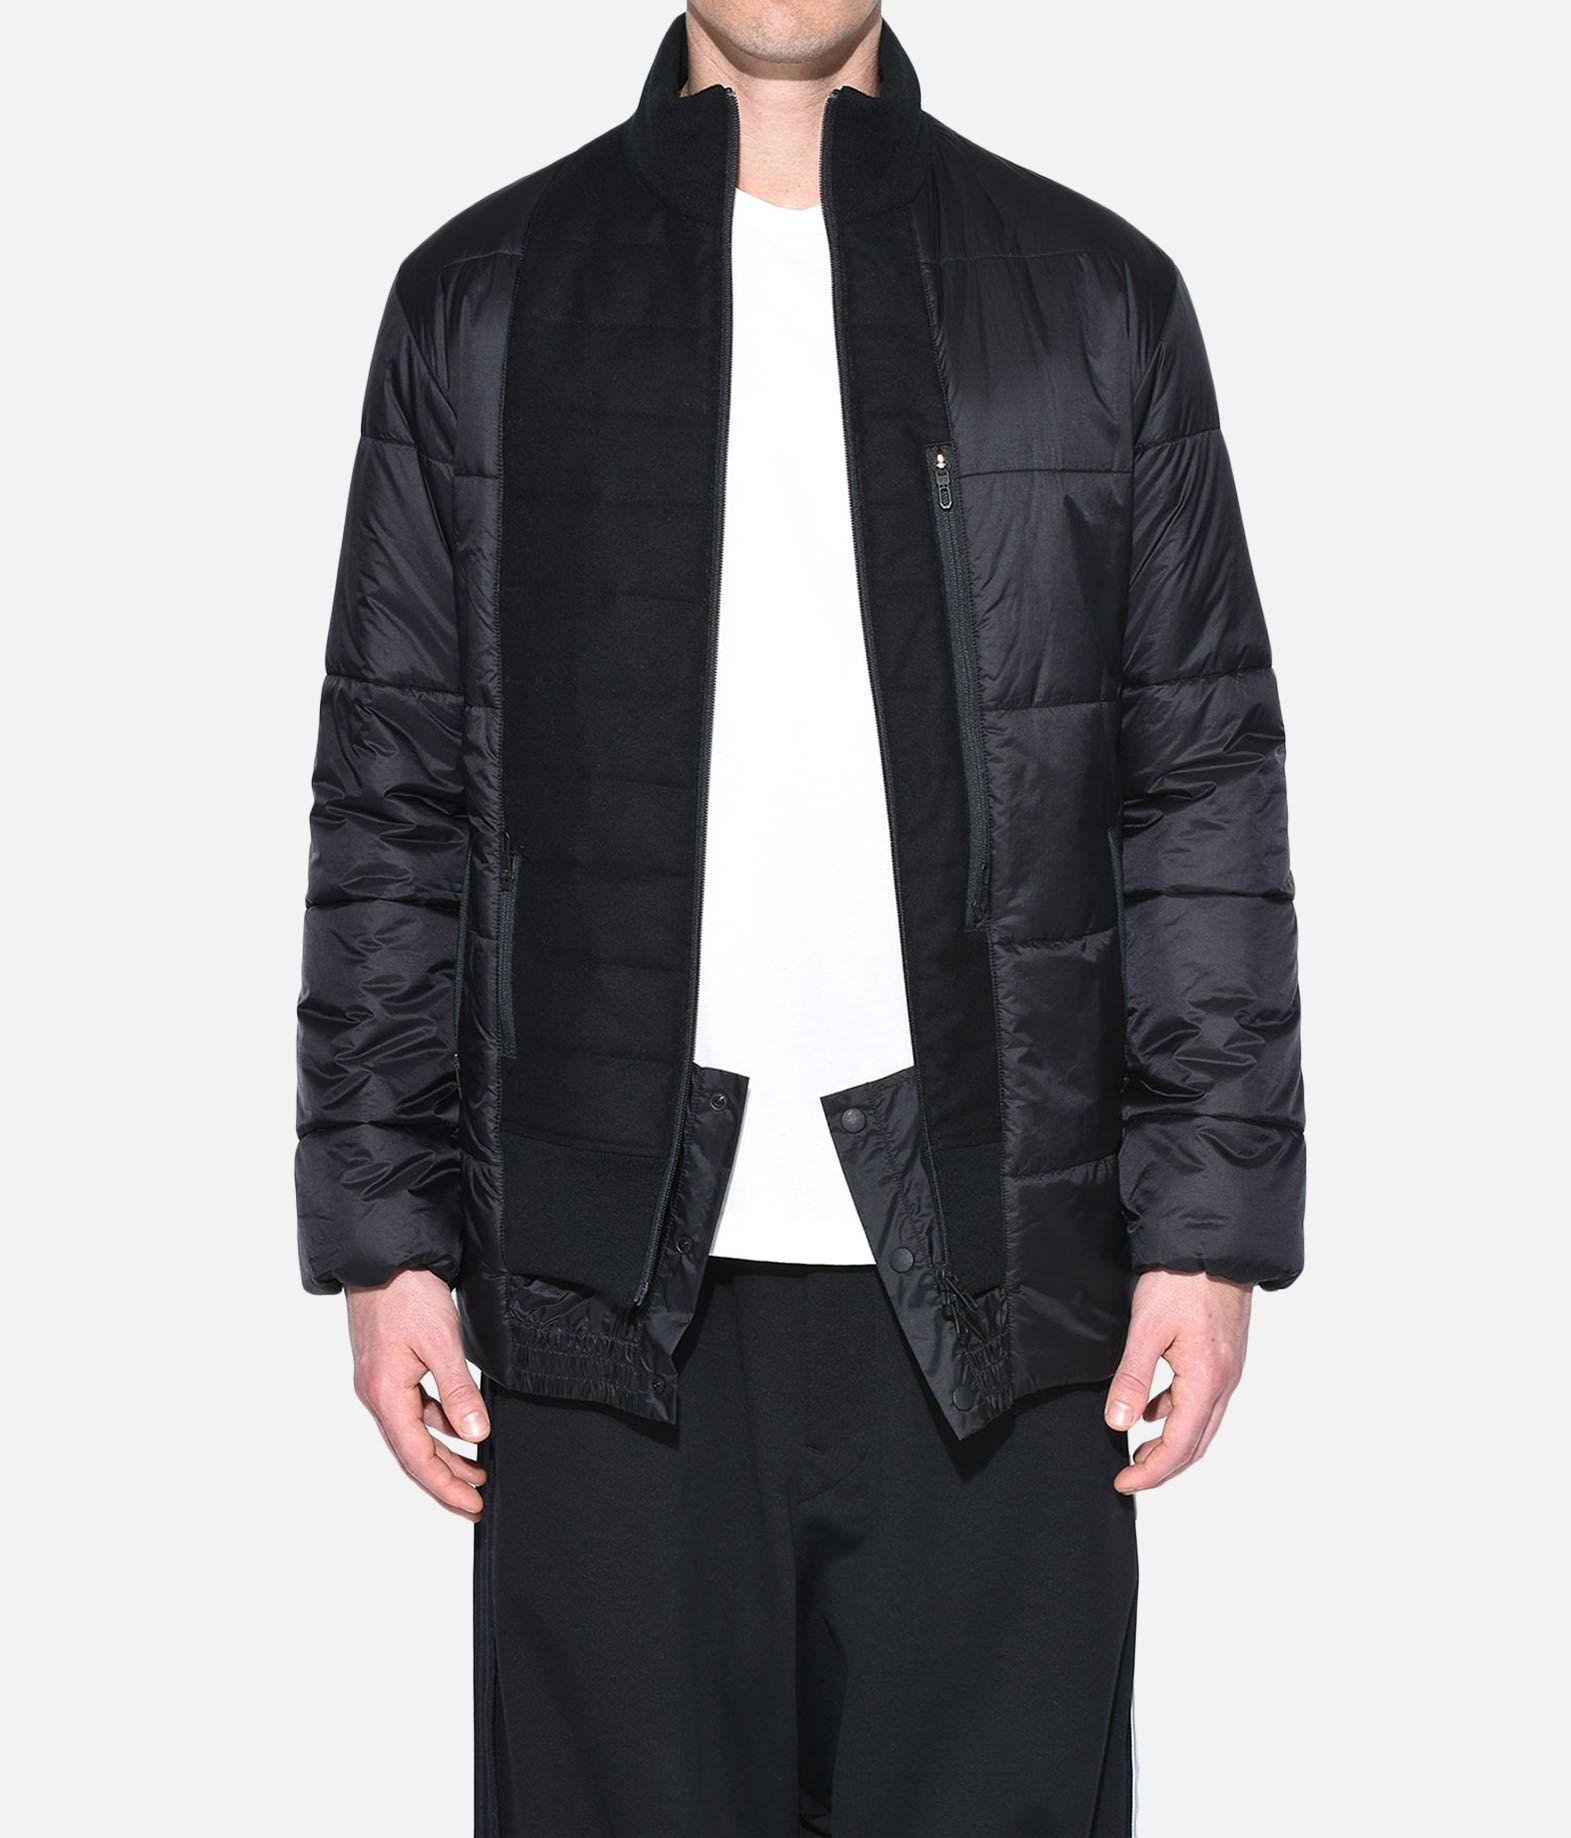 Y-3 Y-3 Patchwork Down Jacket ダウン メンズ r